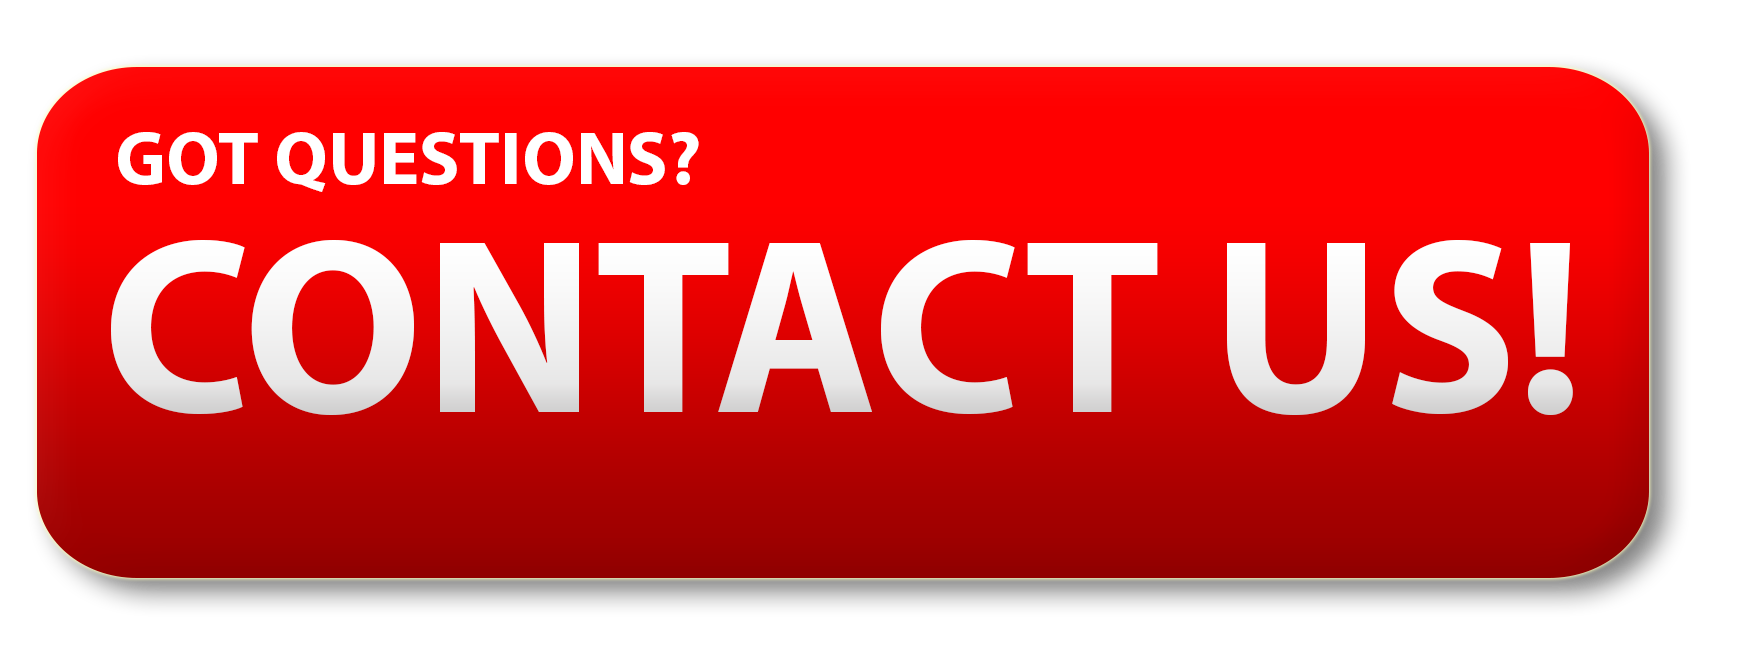 Contact us button png. Bchazmat management ltd